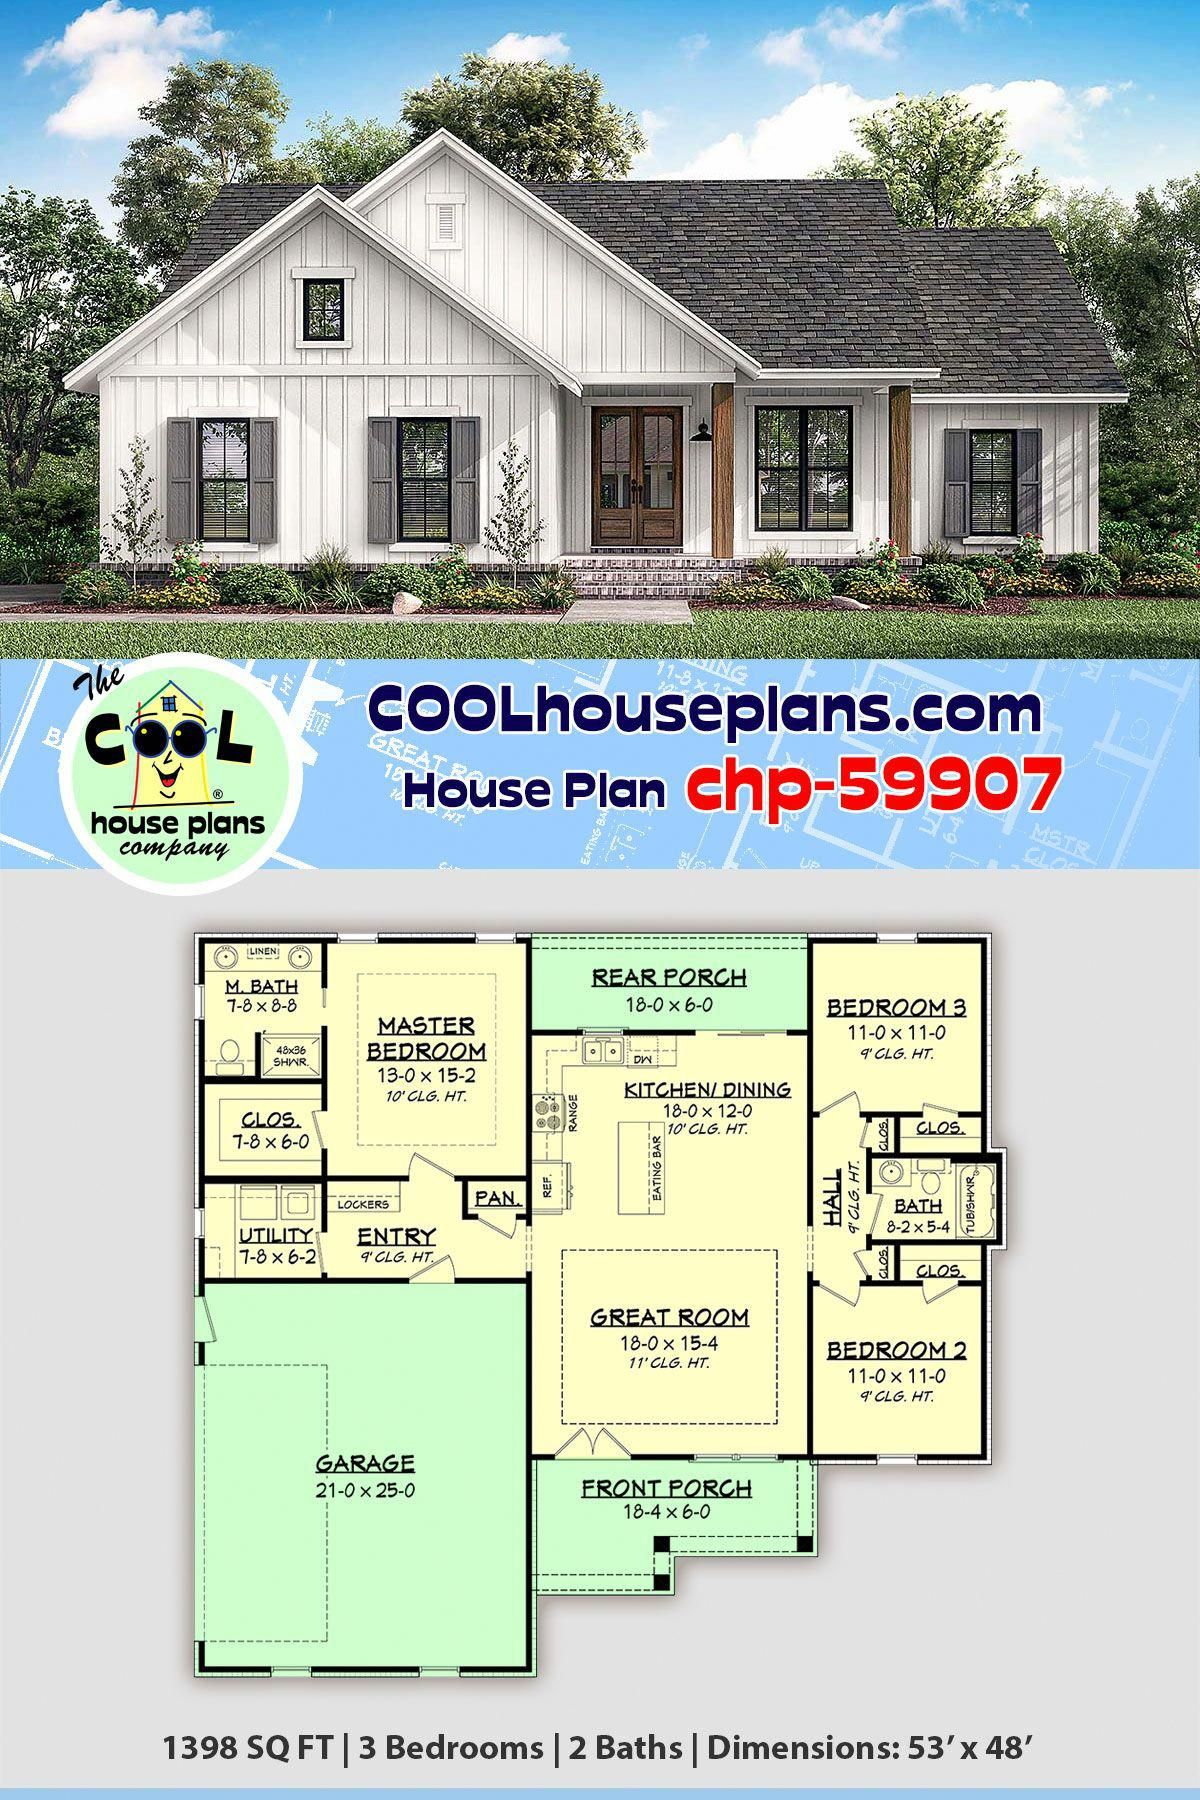 Traditional Style House Plan 51997 With 3 Bed 2 Bath 2 Car Garage In 2020 Small Country Homes House Plans Farmhouse Country House Plans